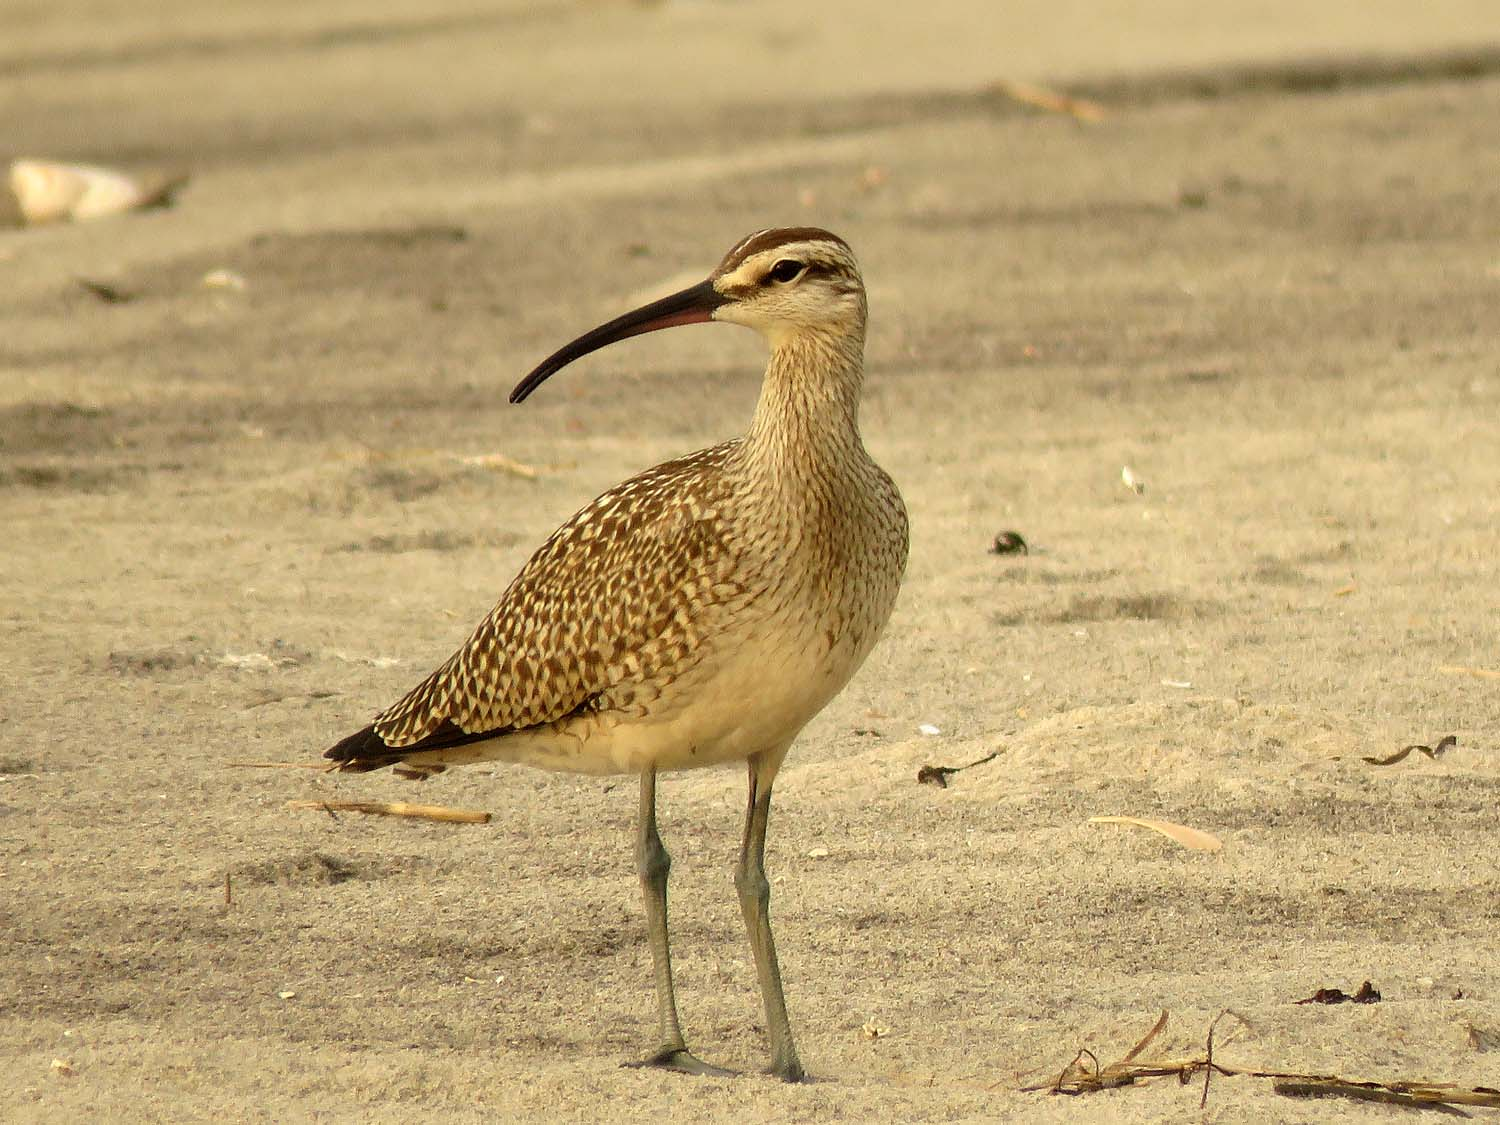 Whimbrel at Breezy Point, Queens, September 19, 2018